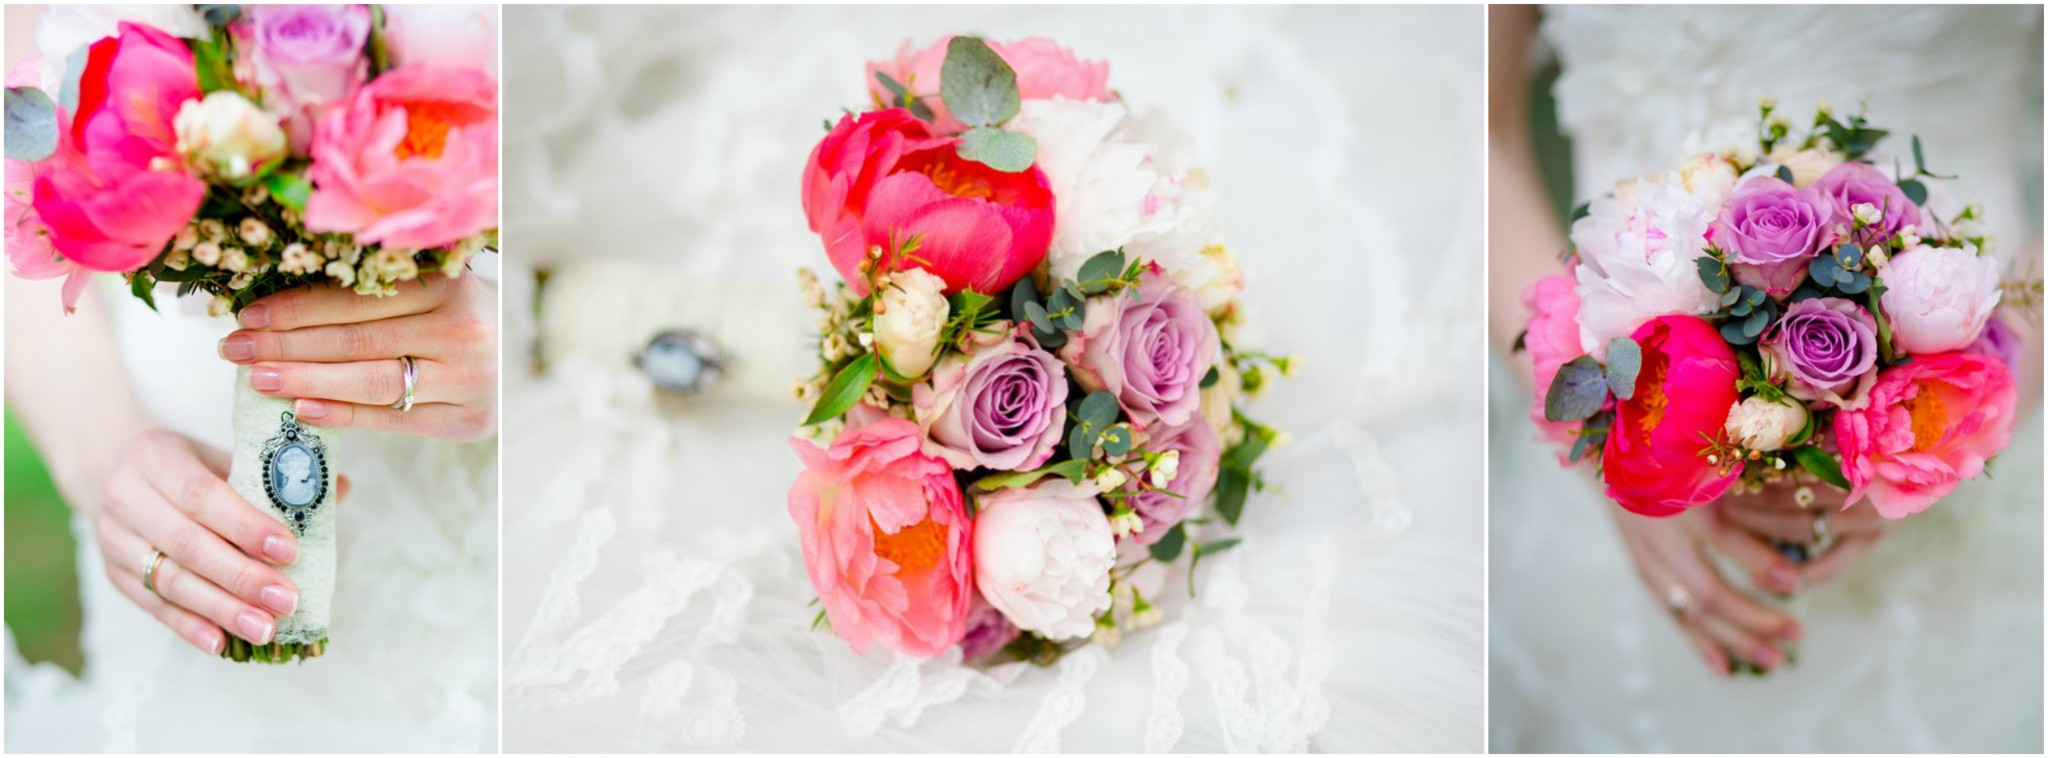 3 pictures of Bridal Bouquets for Wedding Flowers in Pink